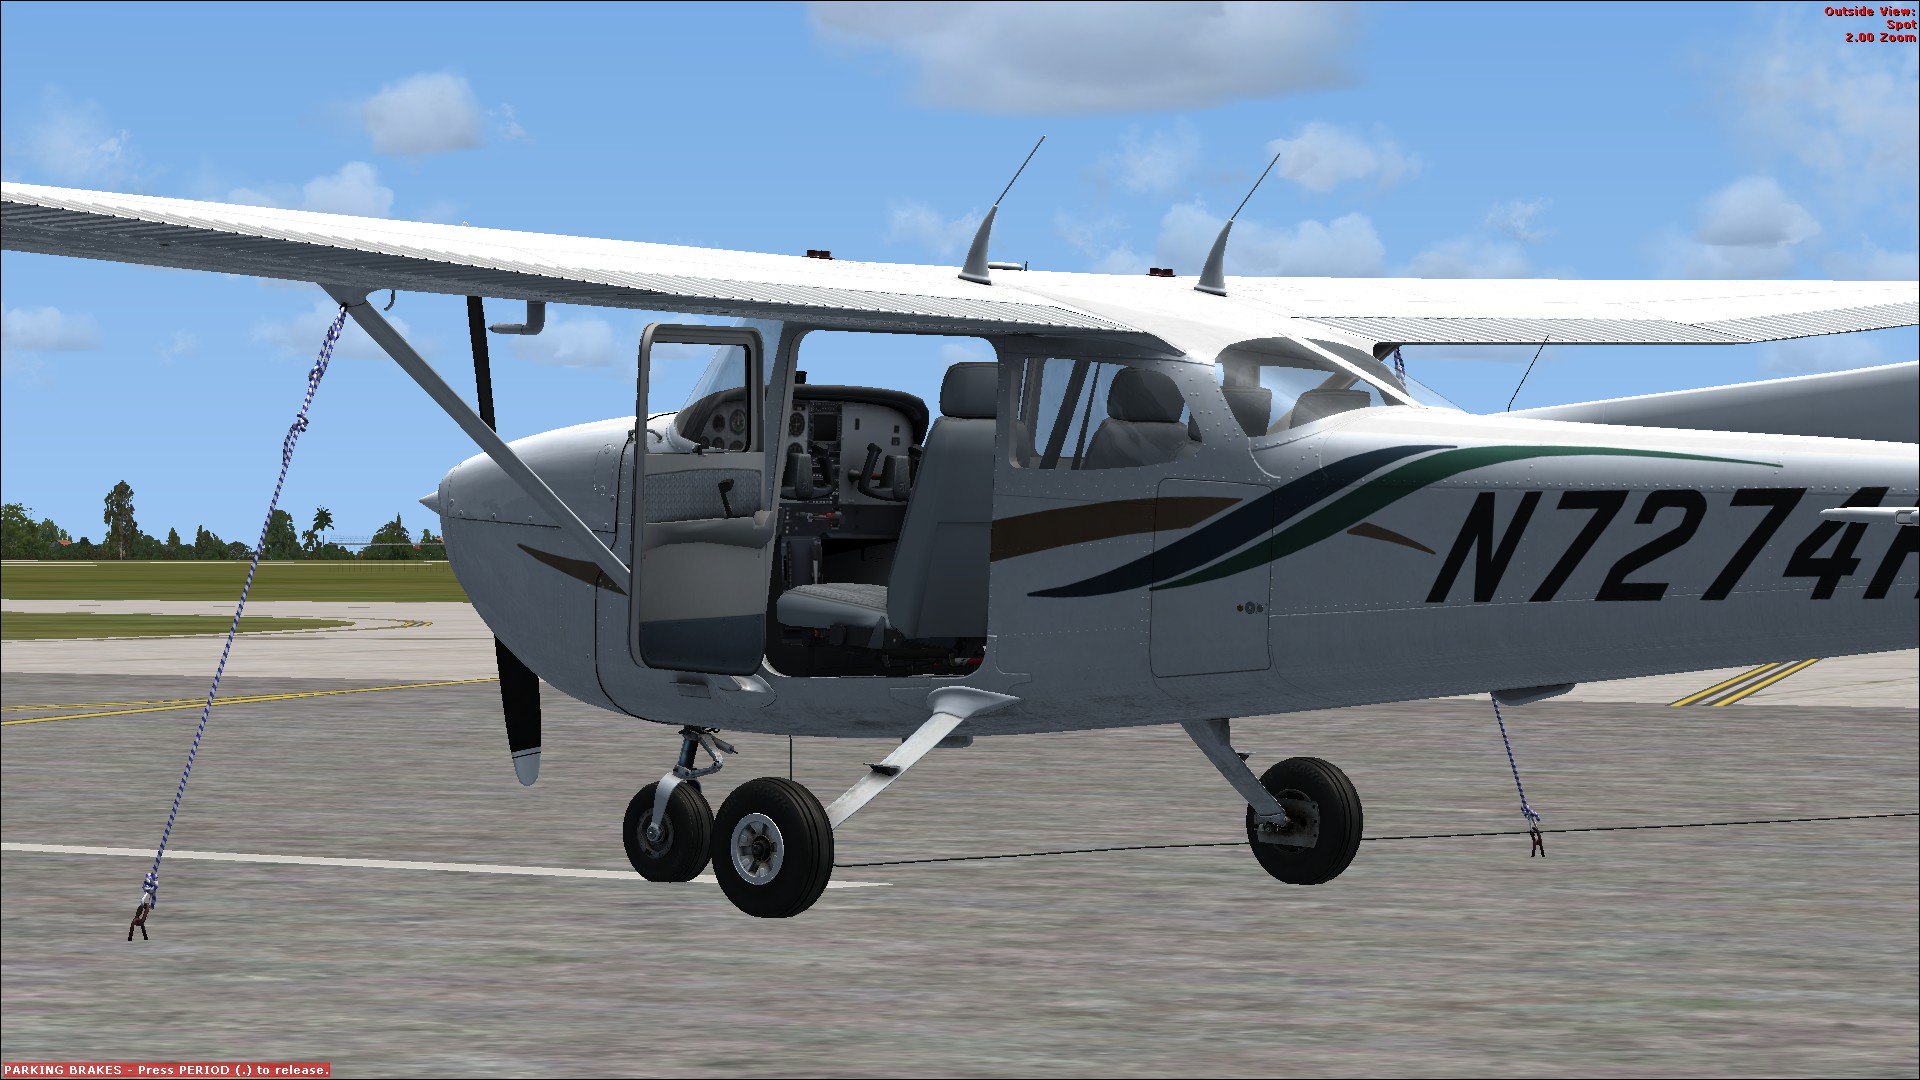 Flying the a2a simulations cessna 172 in fsx at 13,500 feet by.